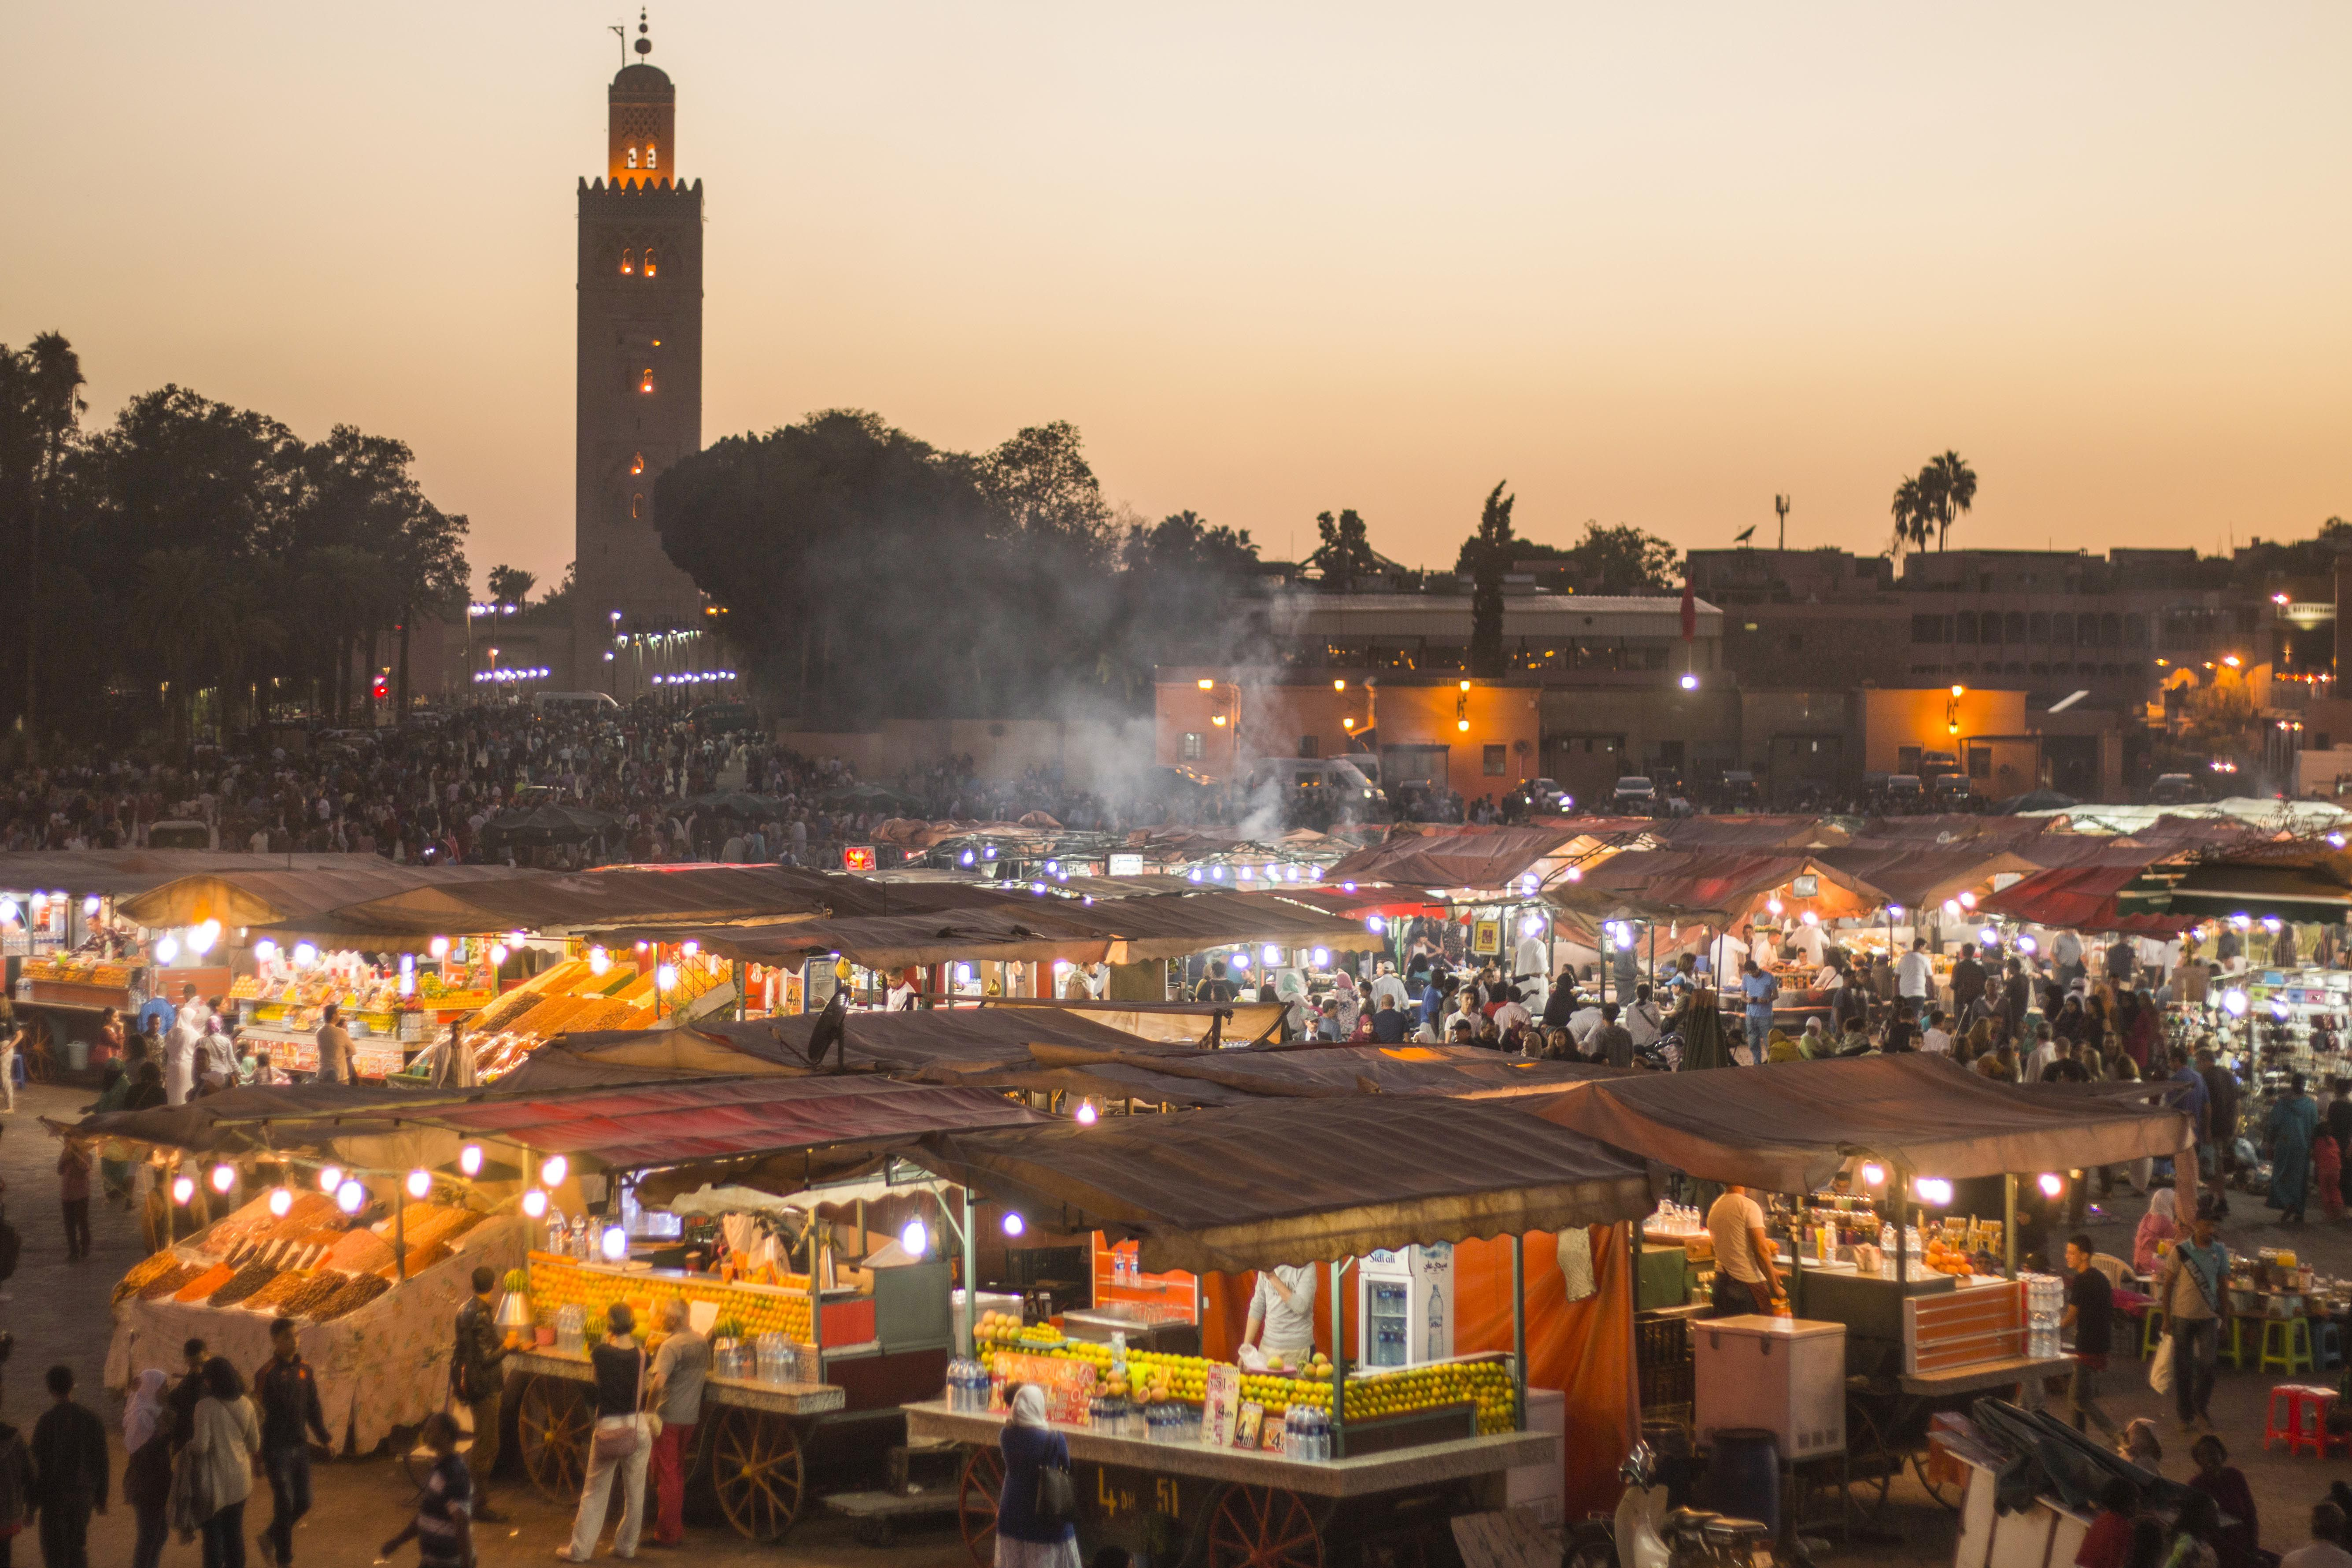 Wide view of all the stands in the main square in Marrakesch